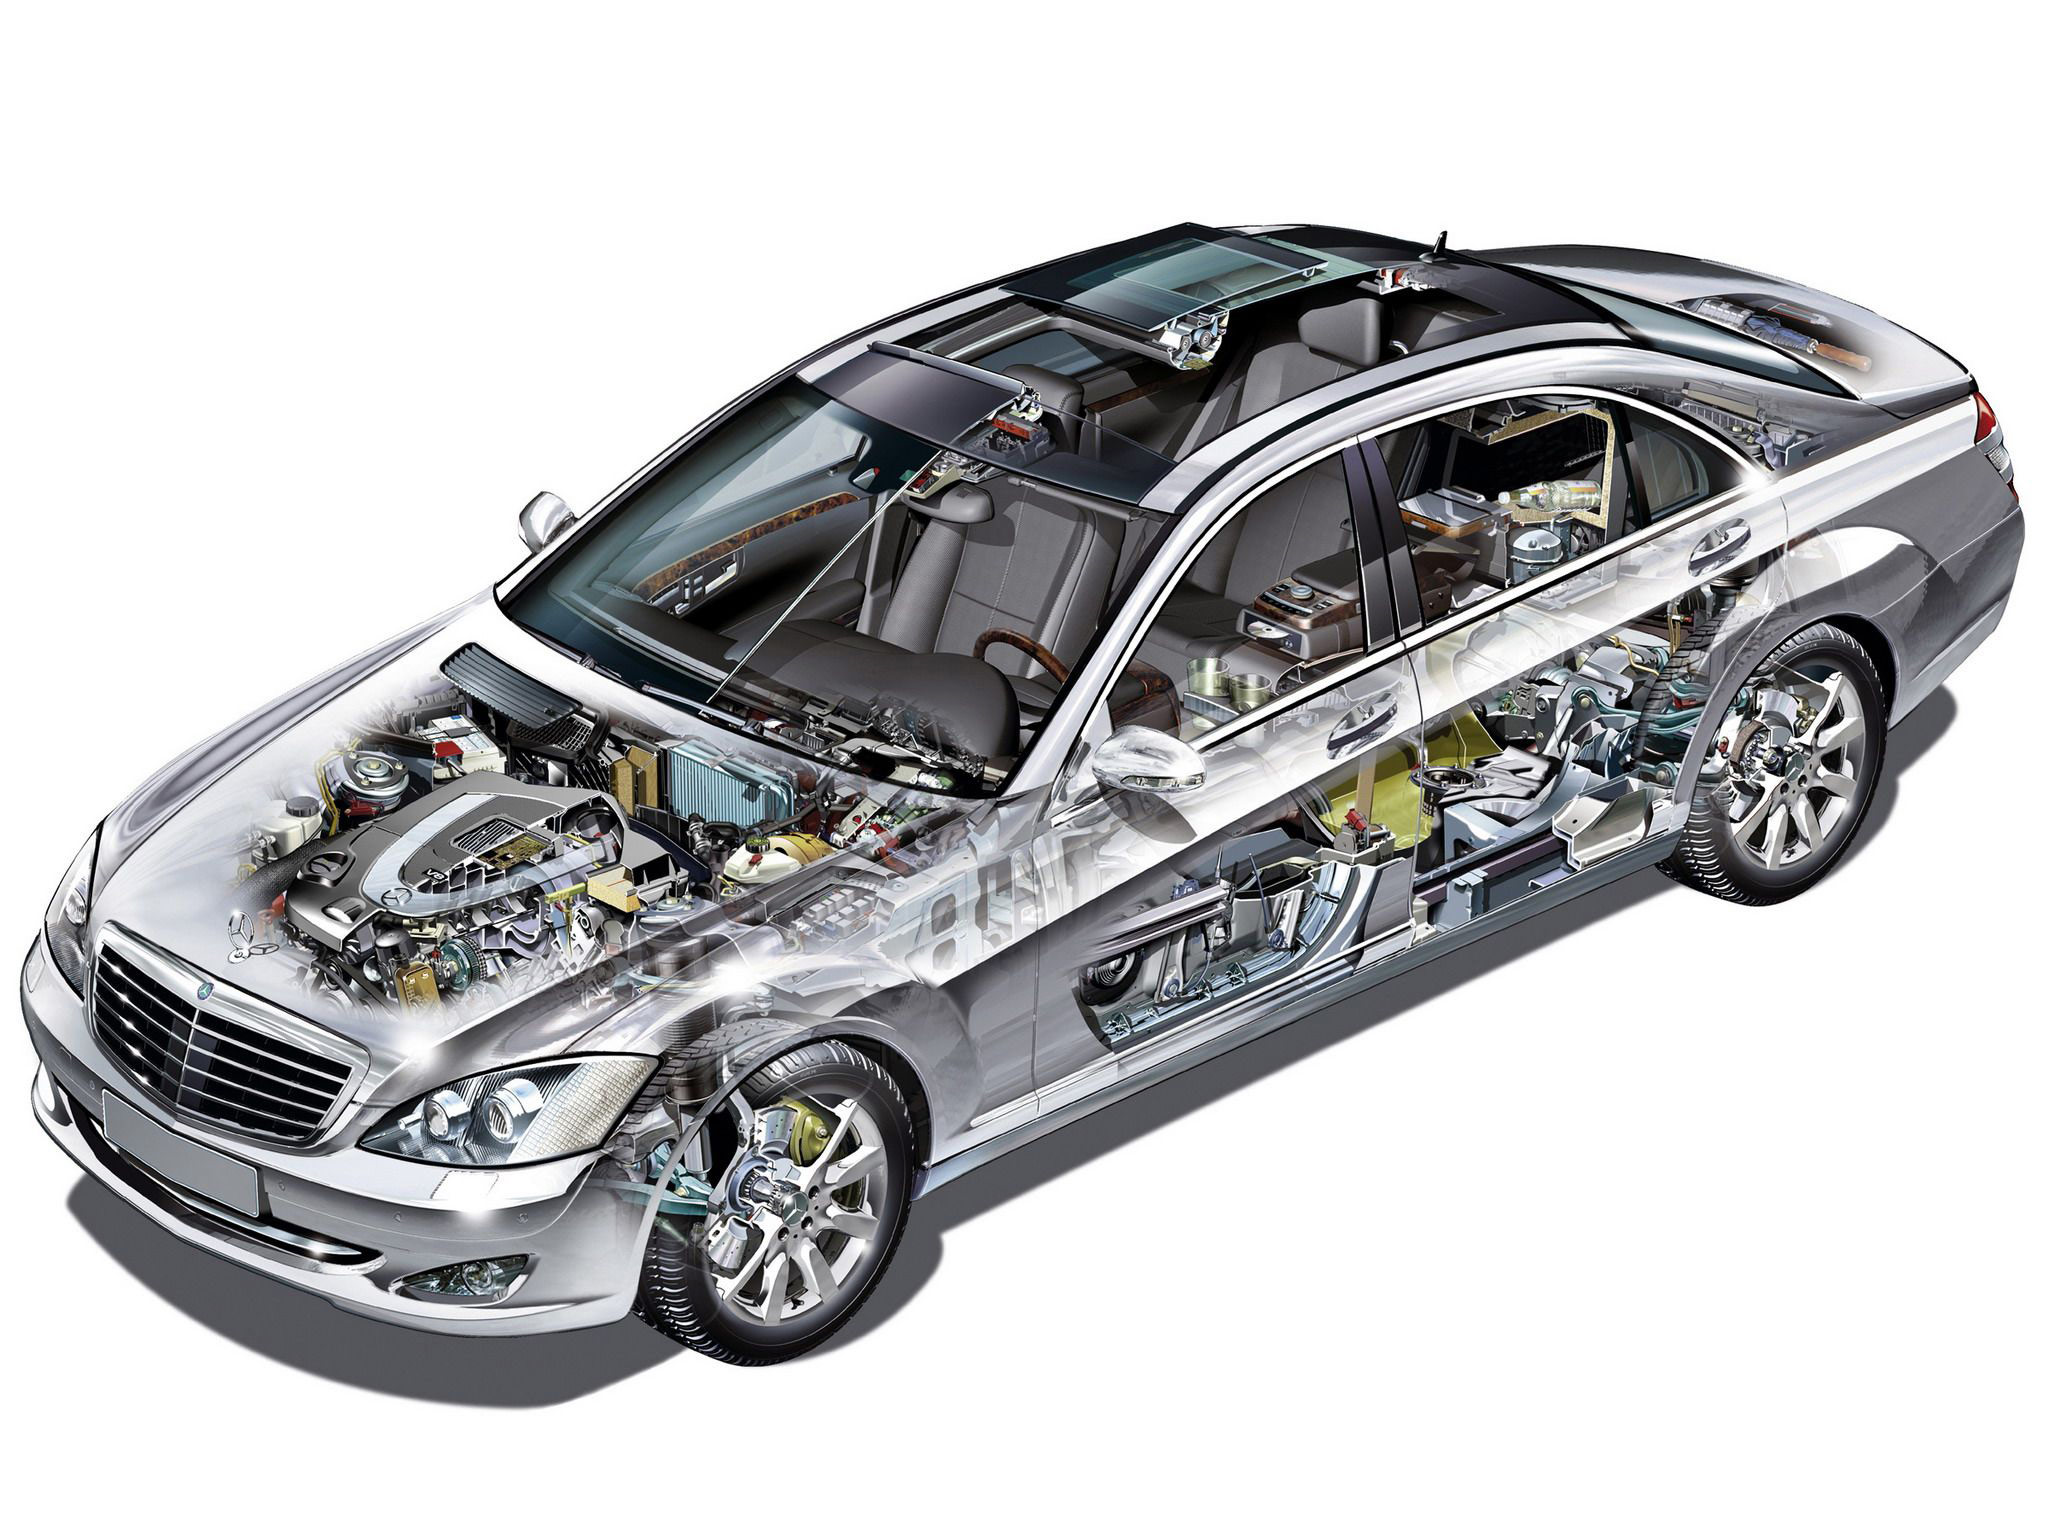 Mercedes-Benz S-class cutaway drawing